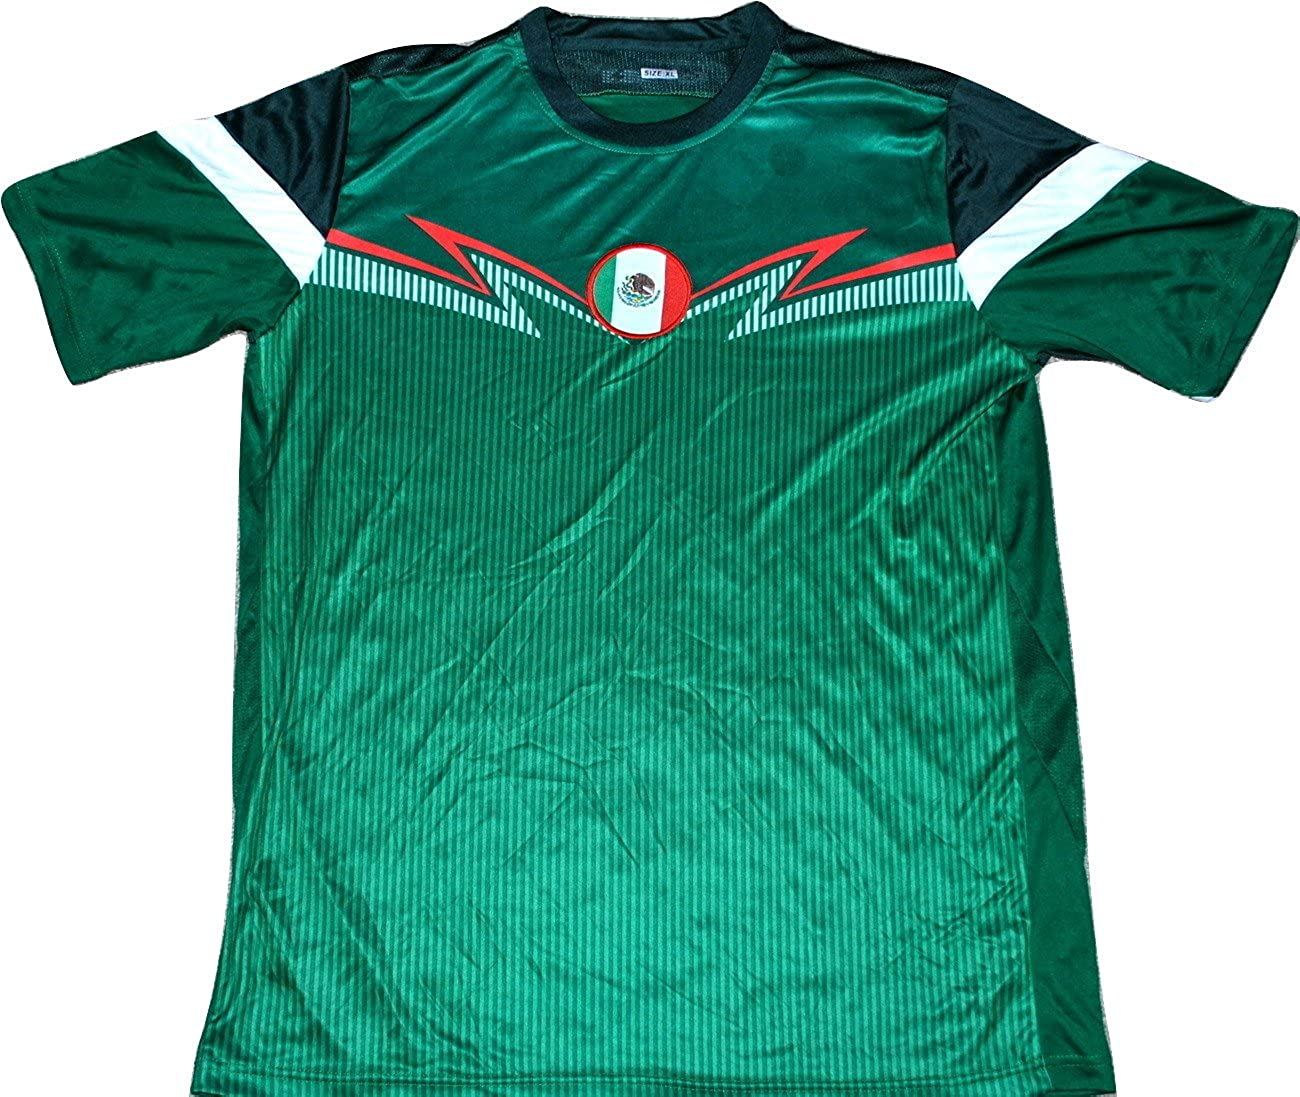 online retailer 60287 d88db Amazon.com: Mexico Soccer Jersey FIFA World Cup National ...